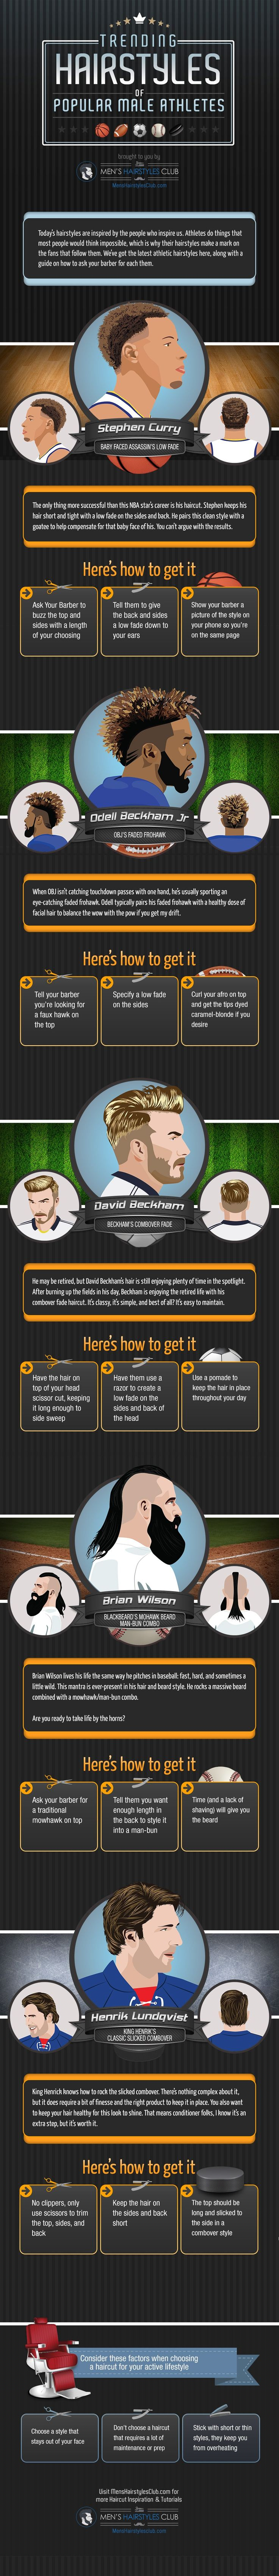 5 Male Athlete Hairstyles for the Entrepreneur in You [Infographic]